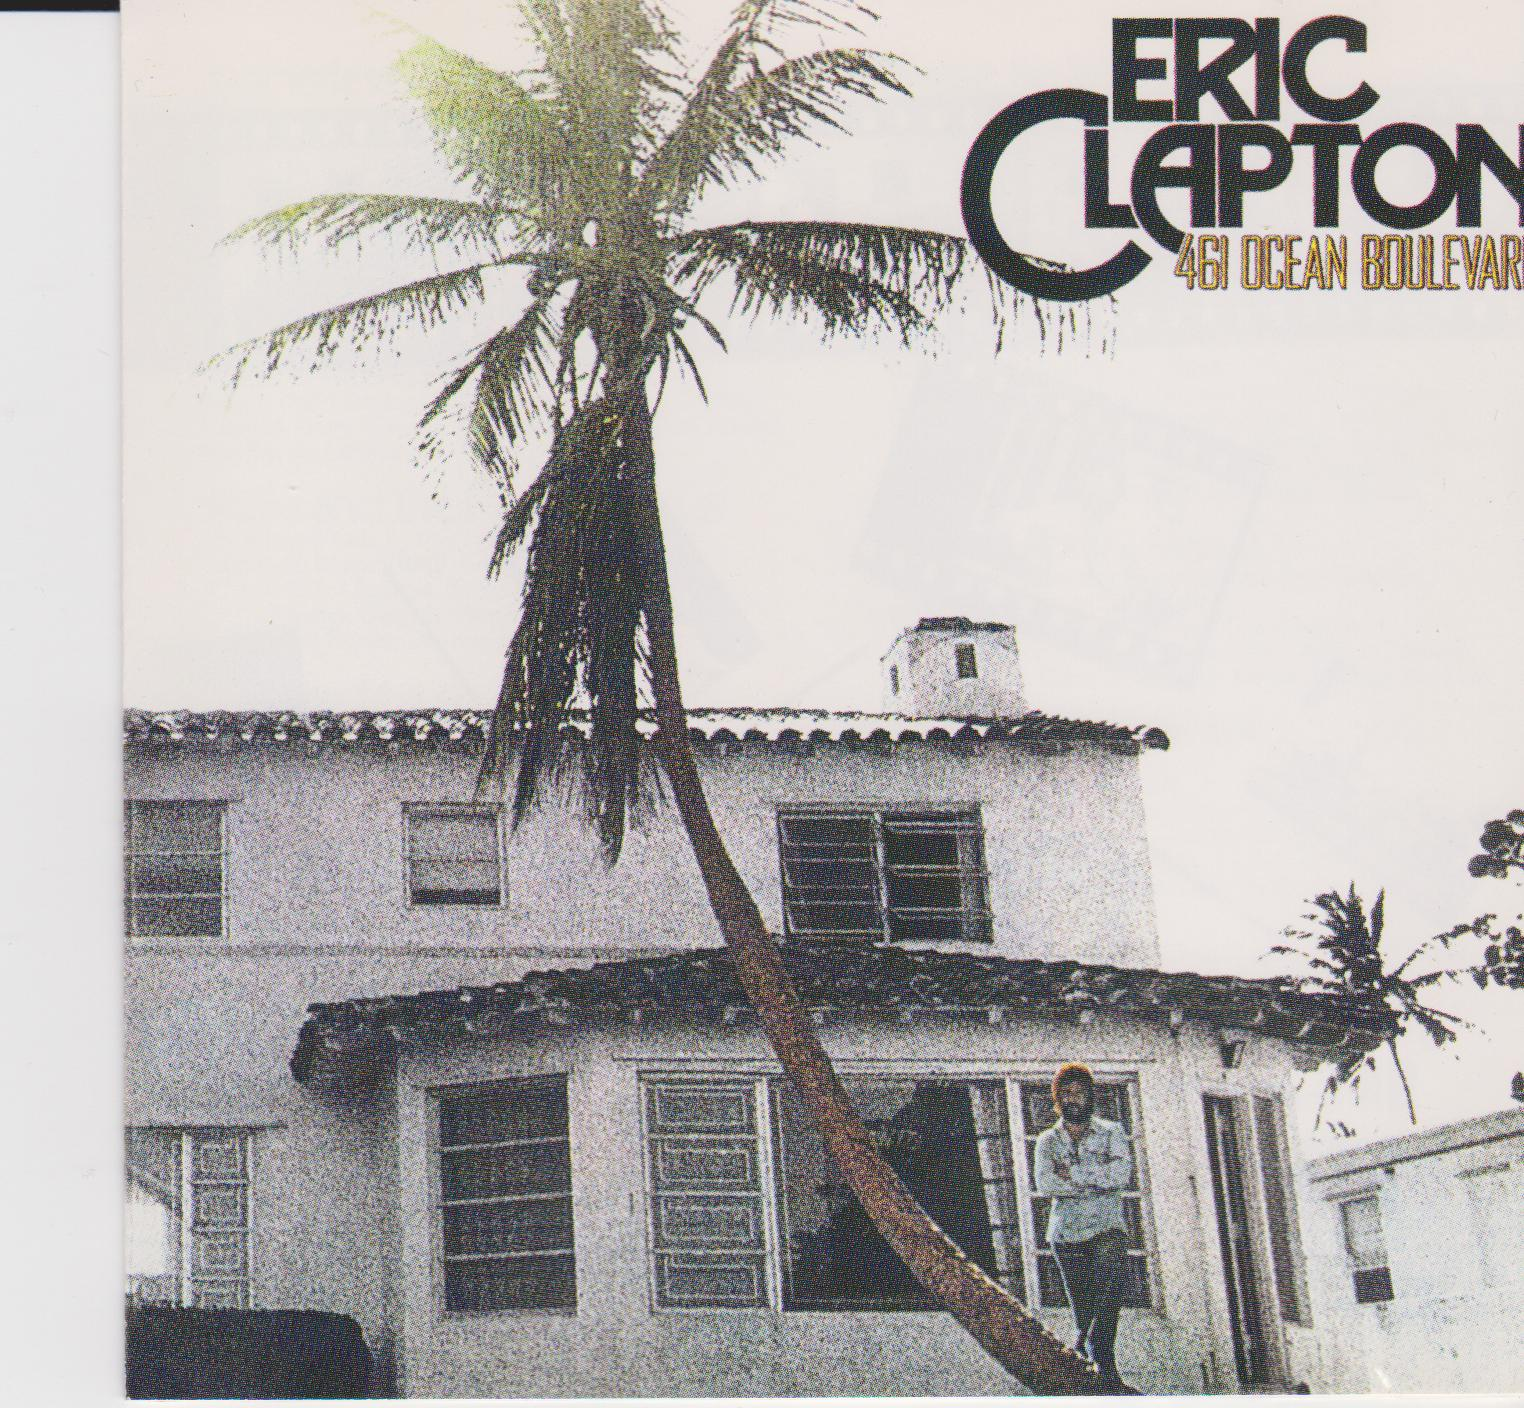 Classic Albums-461 Ocean Boulevard by Eric Clapton